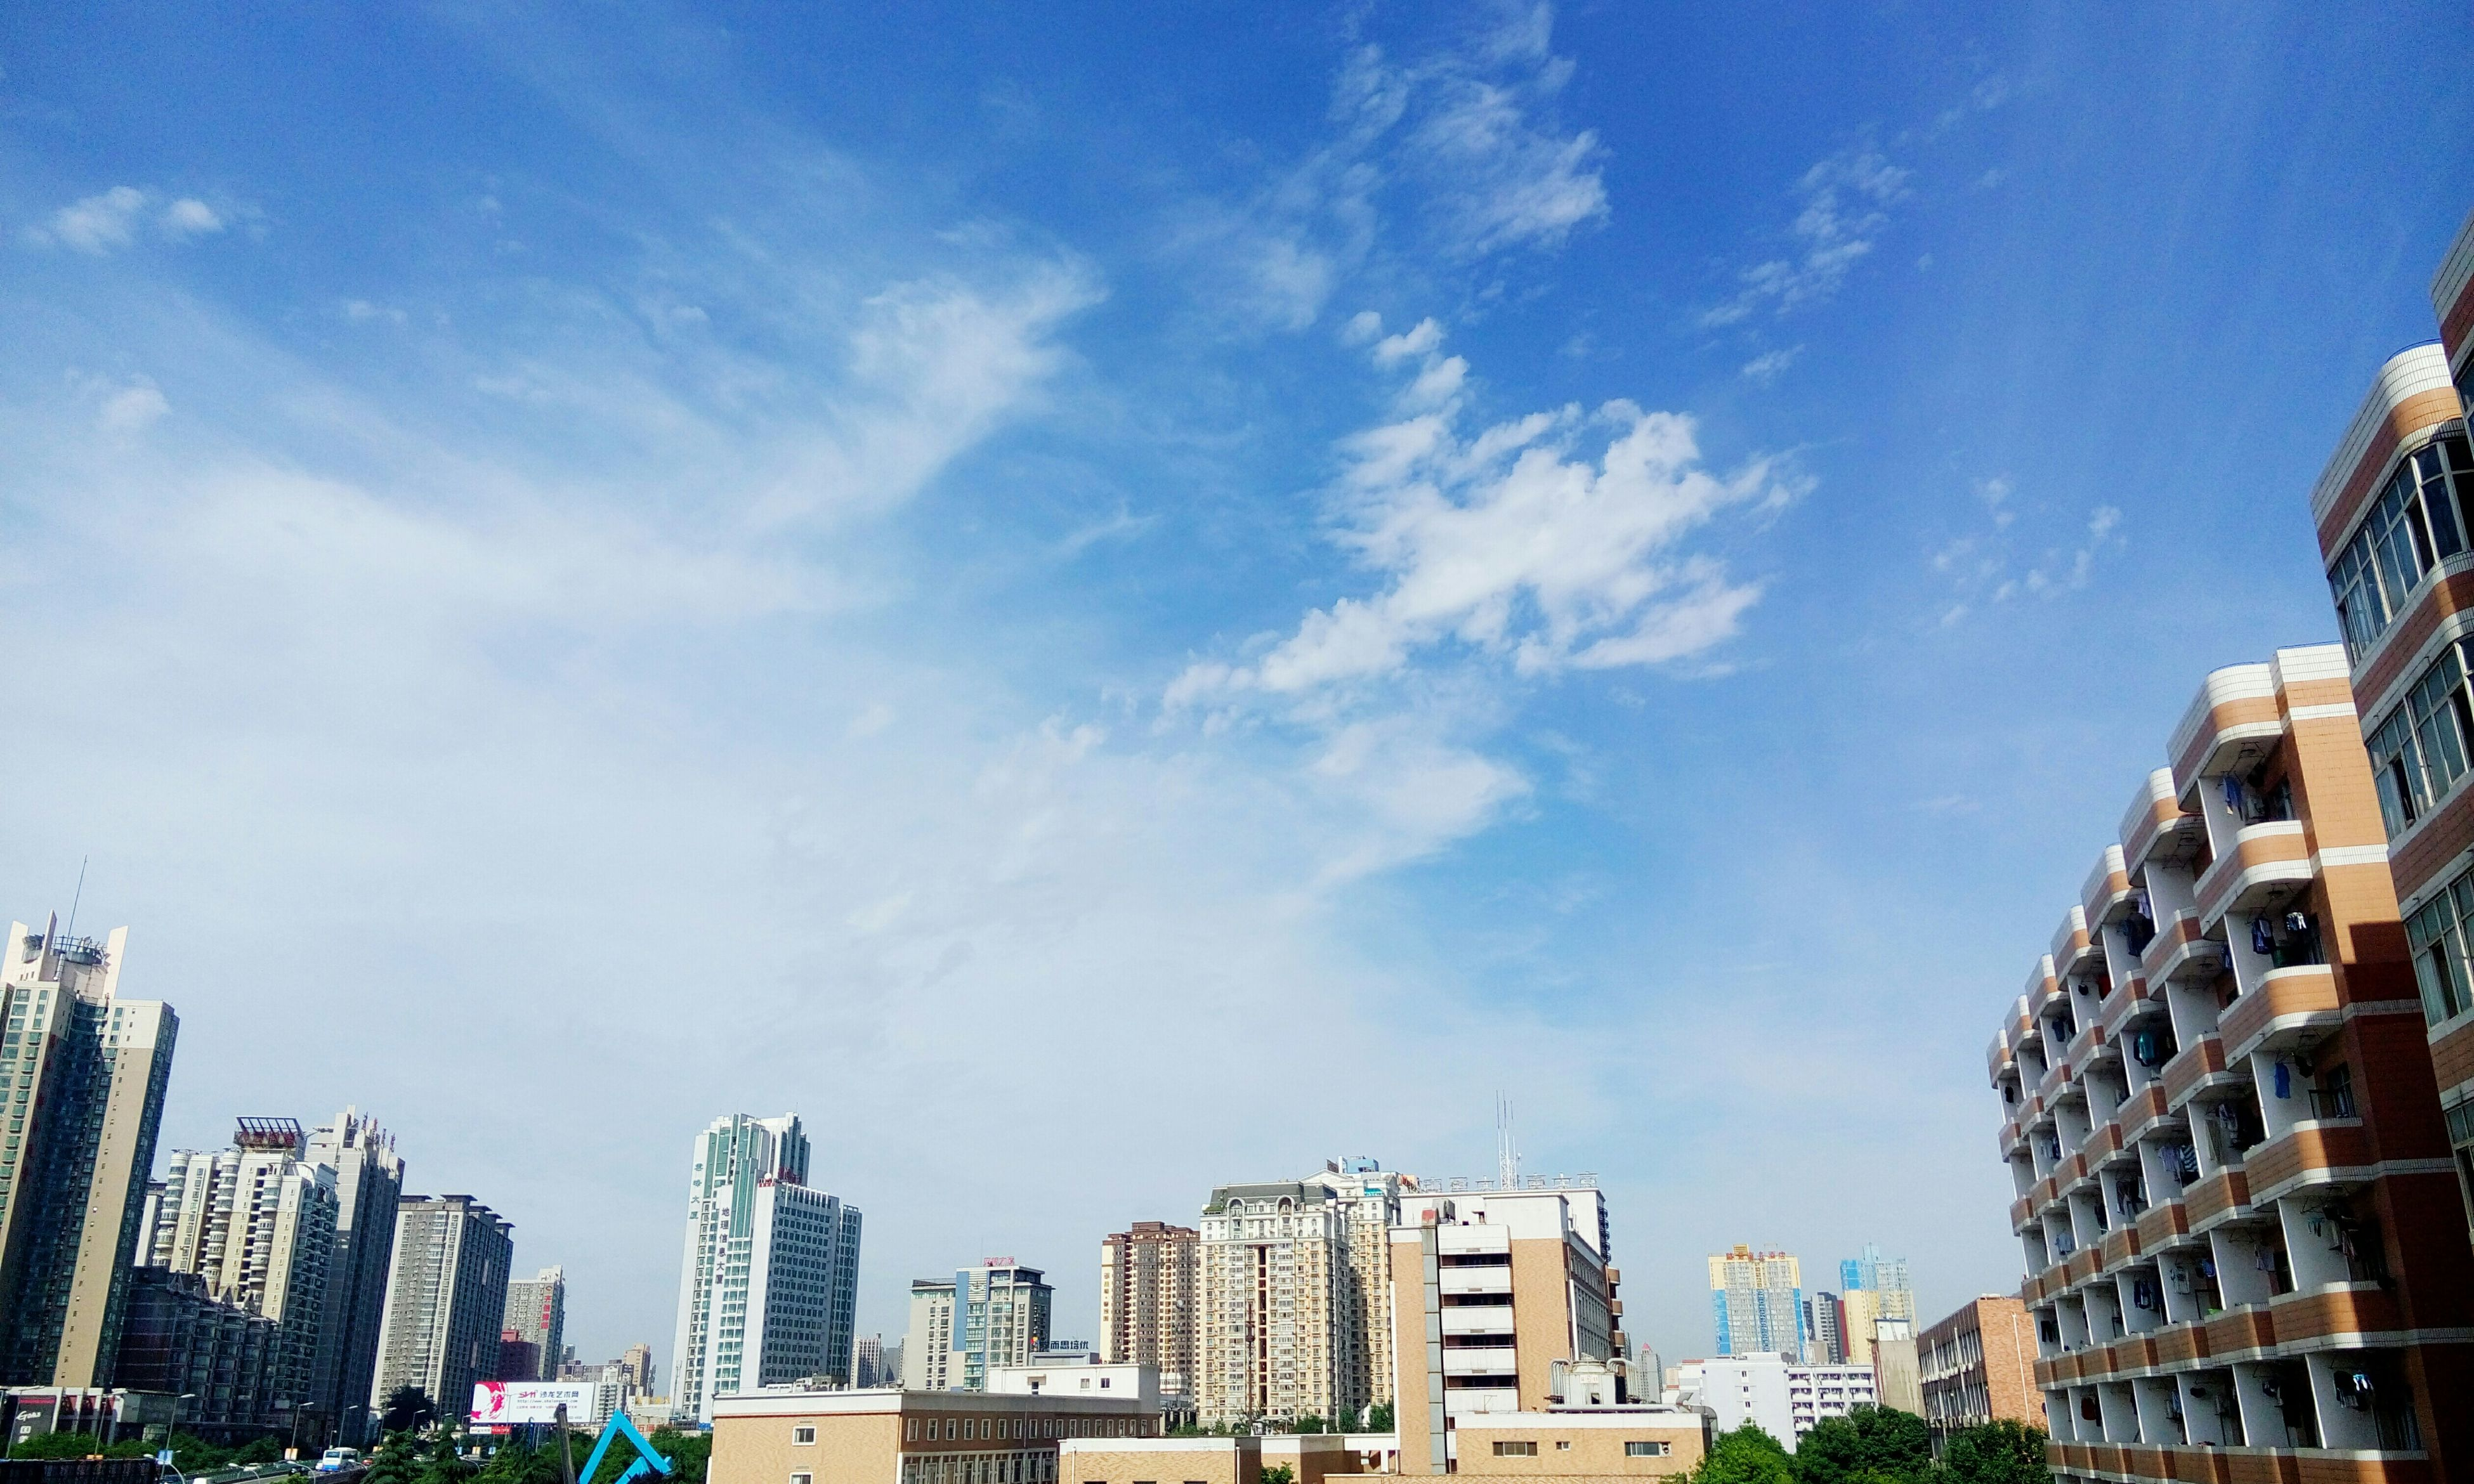 building exterior, architecture, built structure, city, low angle view, skyscraper, sky, modern, tall - high, residential building, office building, building, cityscape, residential structure, tower, blue, city life, residential district, cloud - sky, day